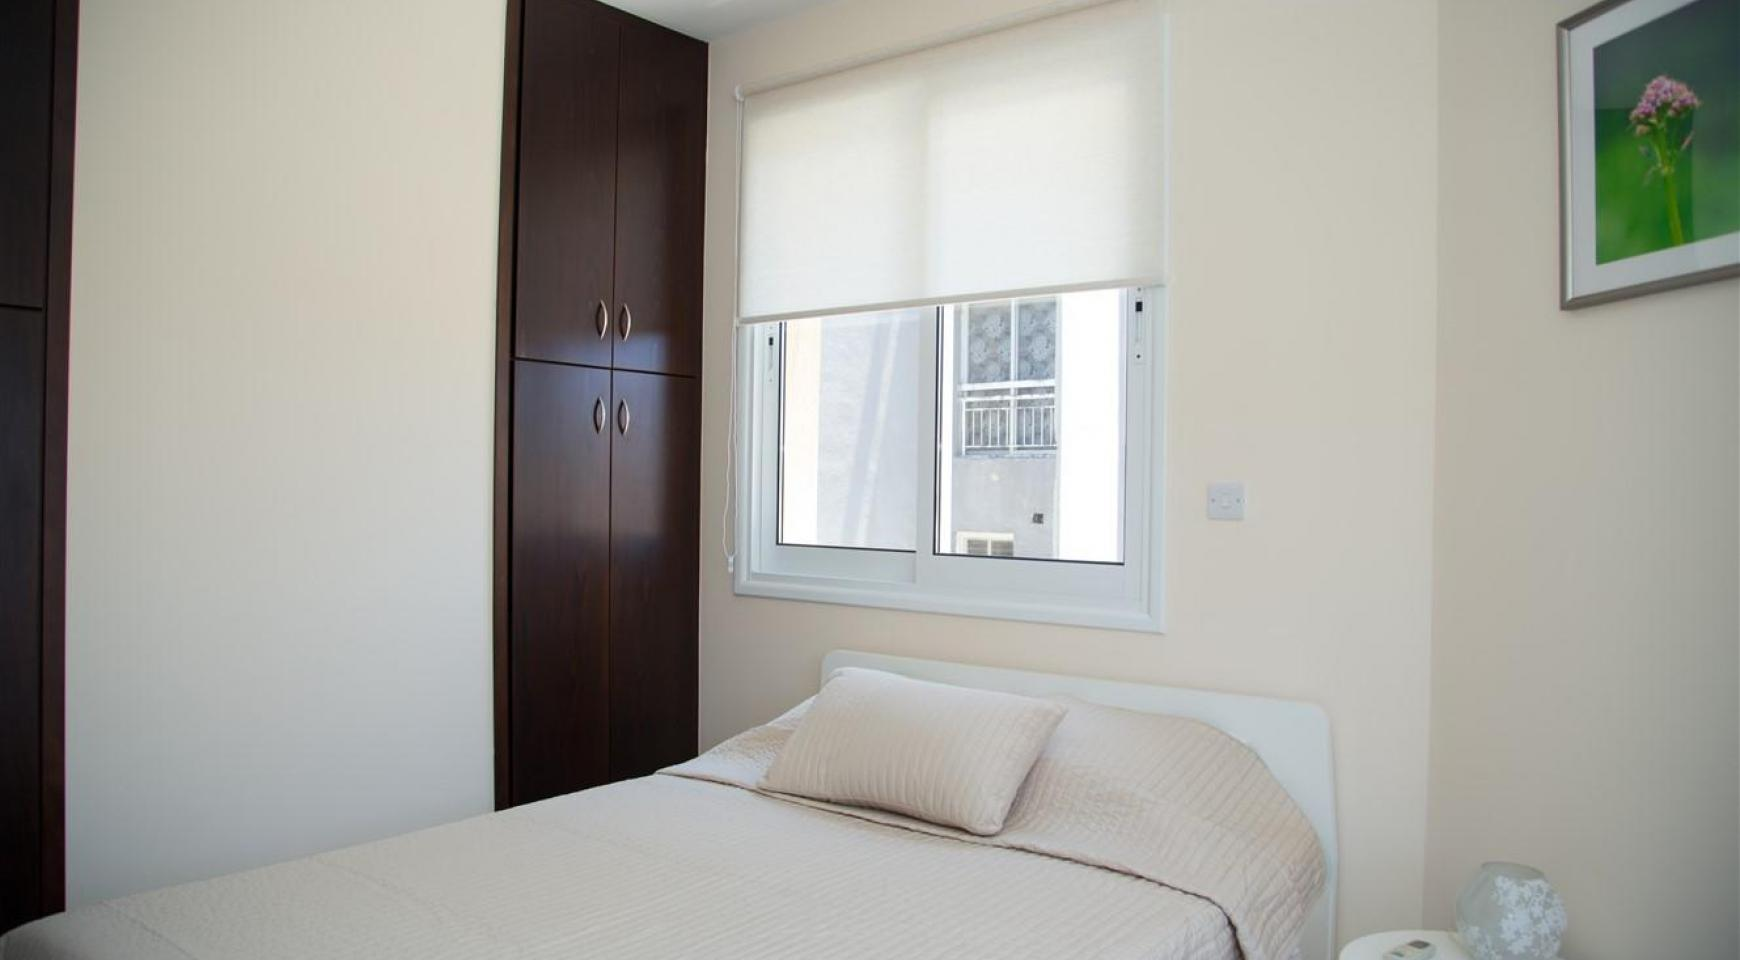 Luxury One Bedroom Apartment Frida 103 in the Tourist Area - 9